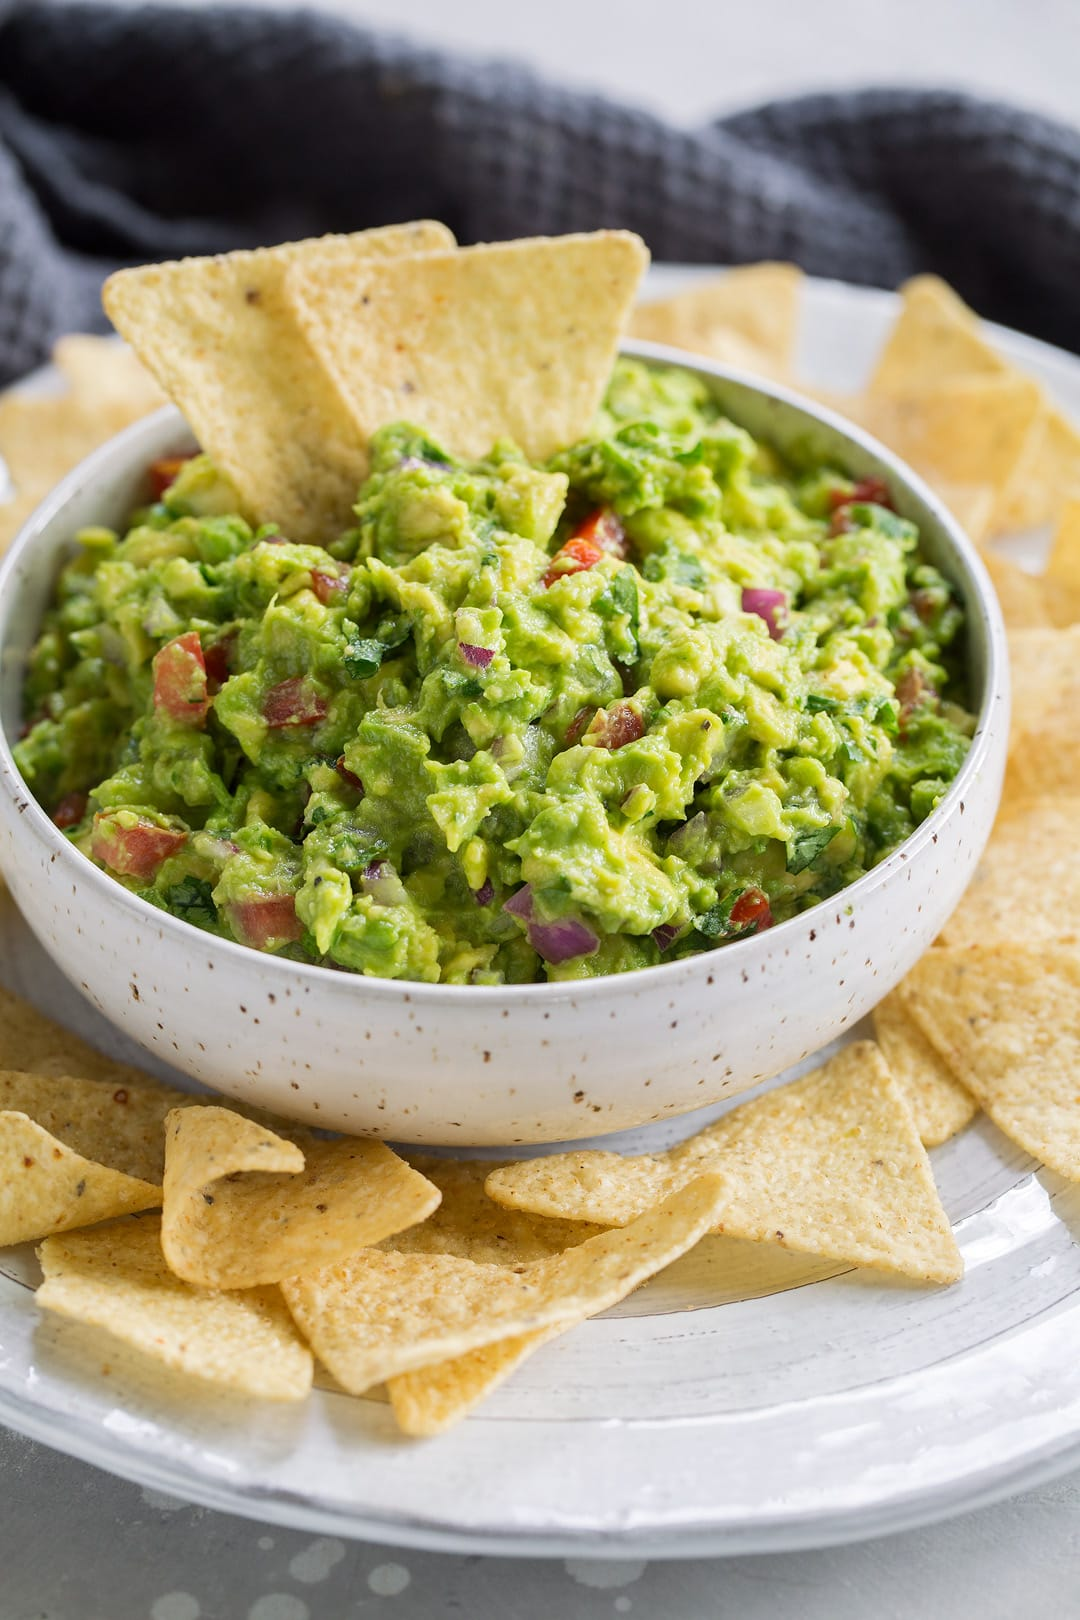 Fresh guacamole in a serving bowl with a side of chips.